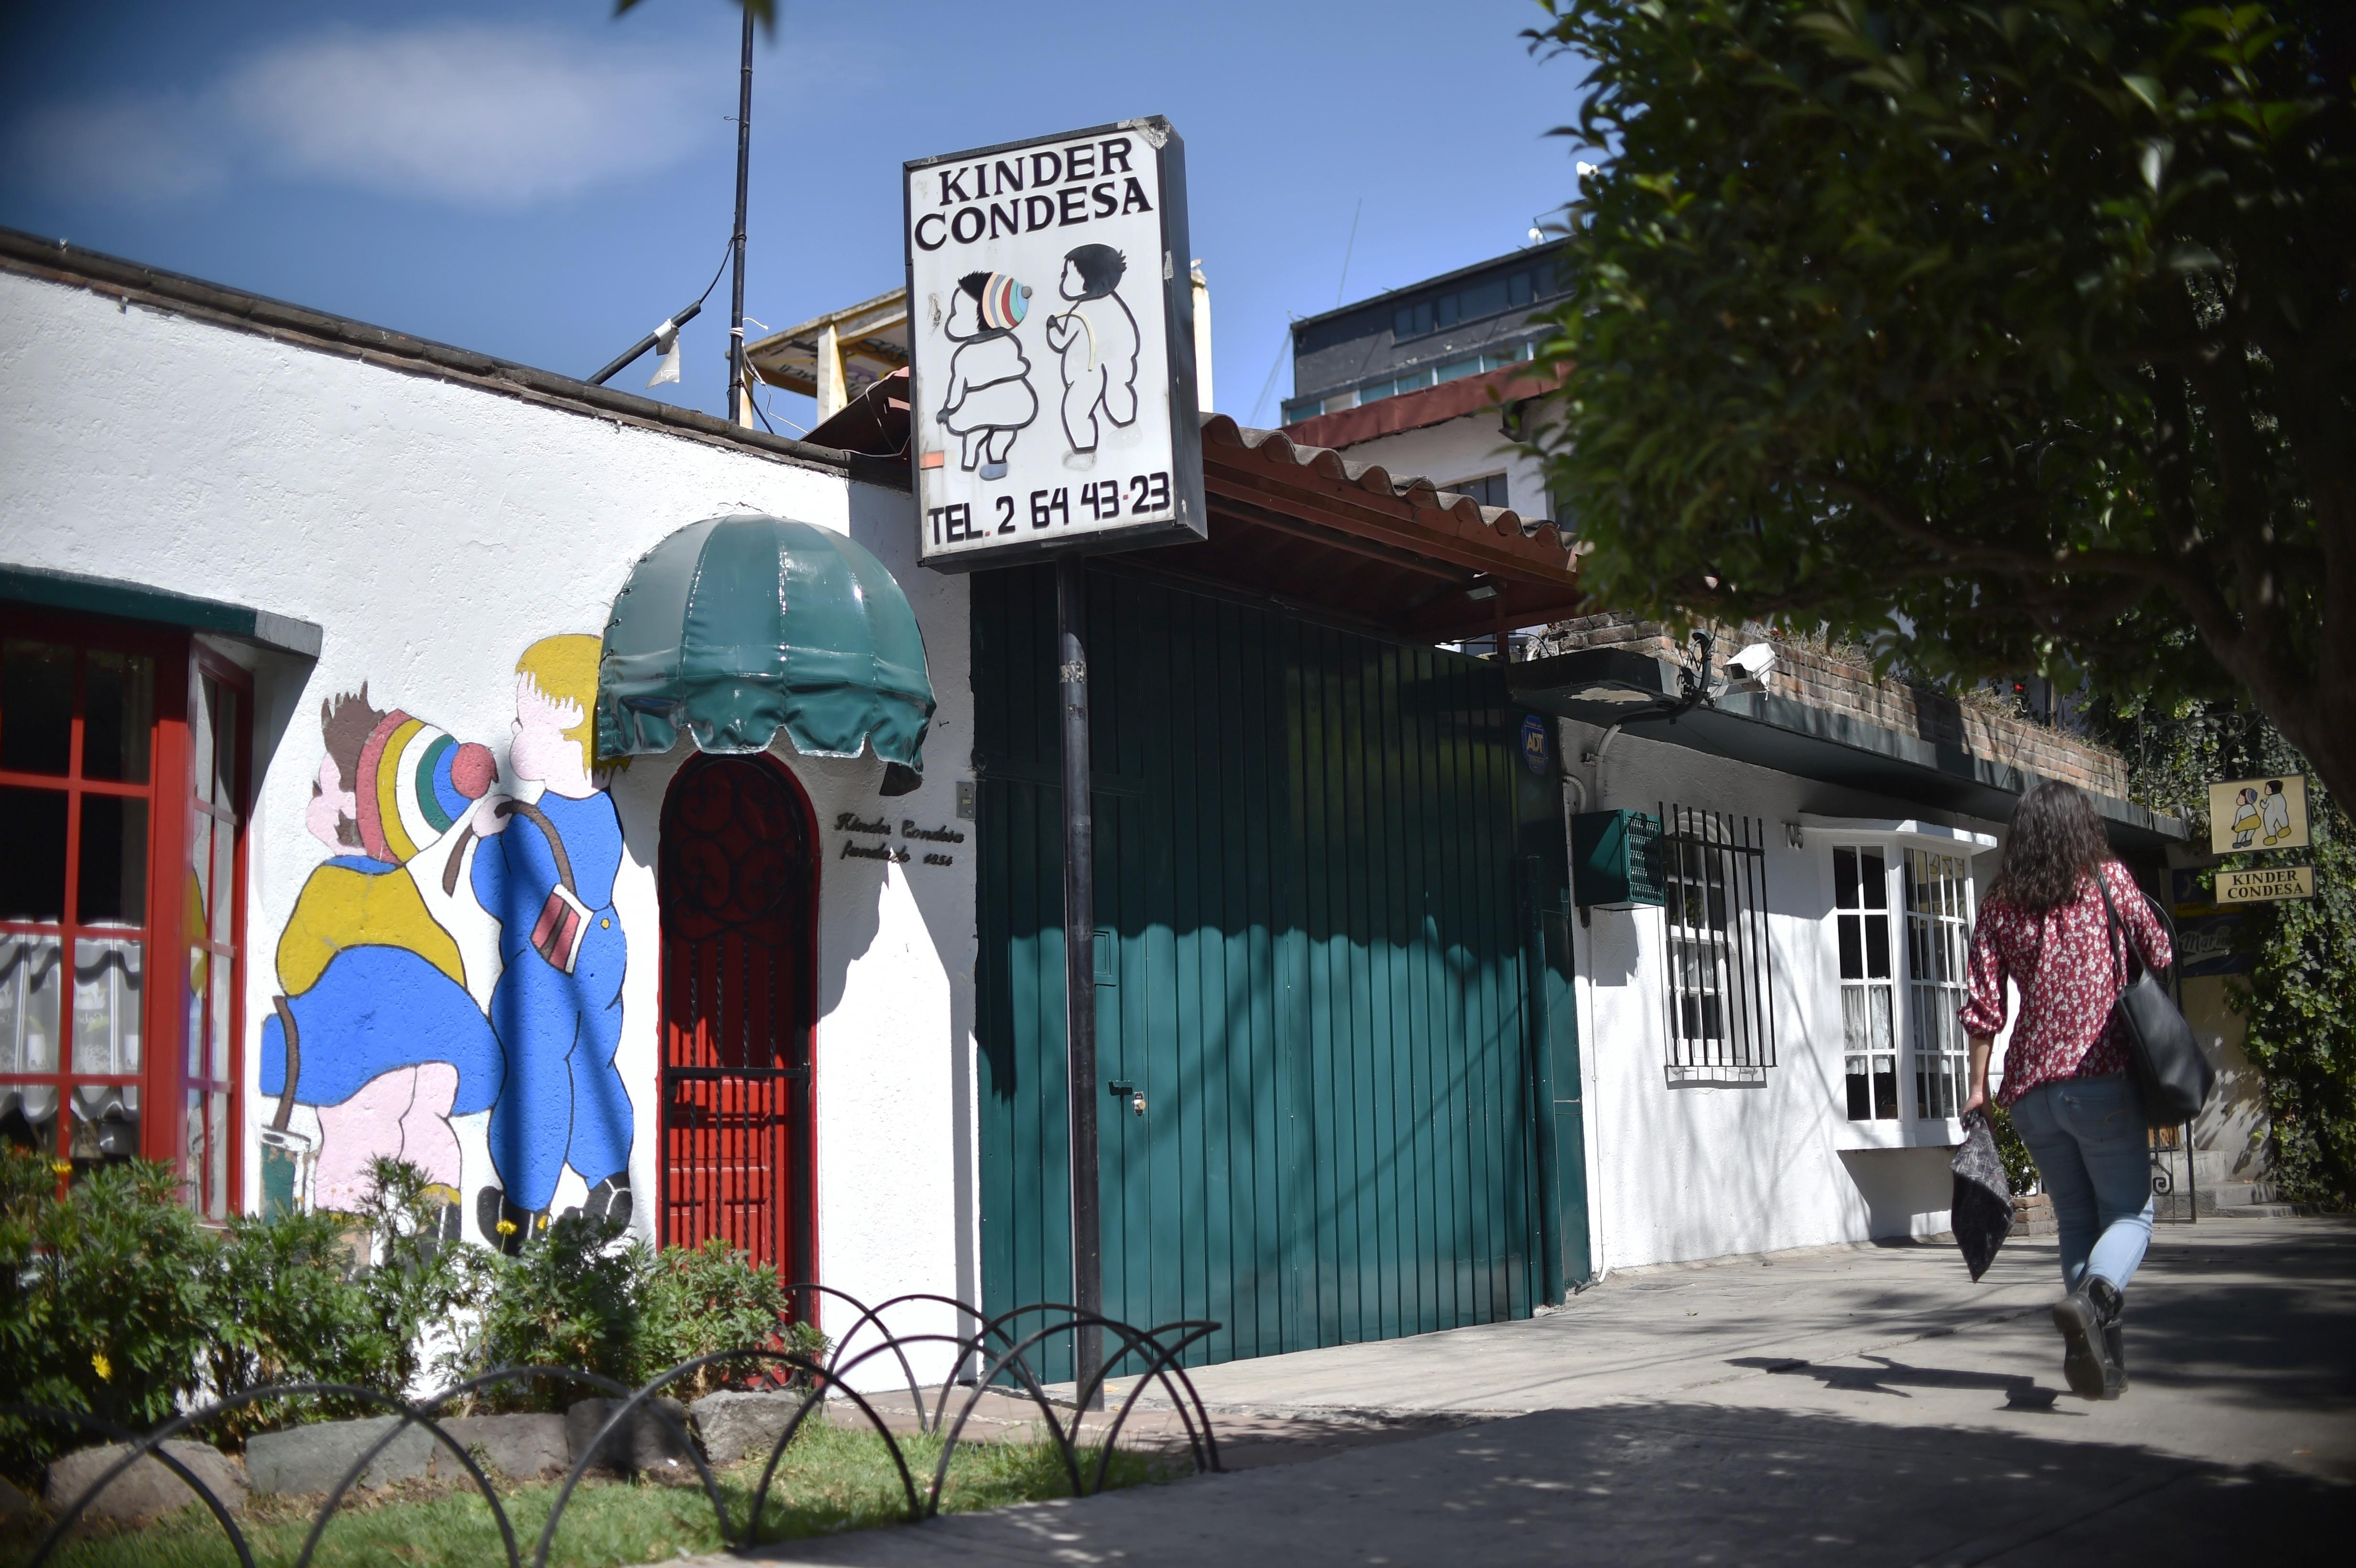 For Cuaron fans visiting Mexico, all roads lead to 'Roma'